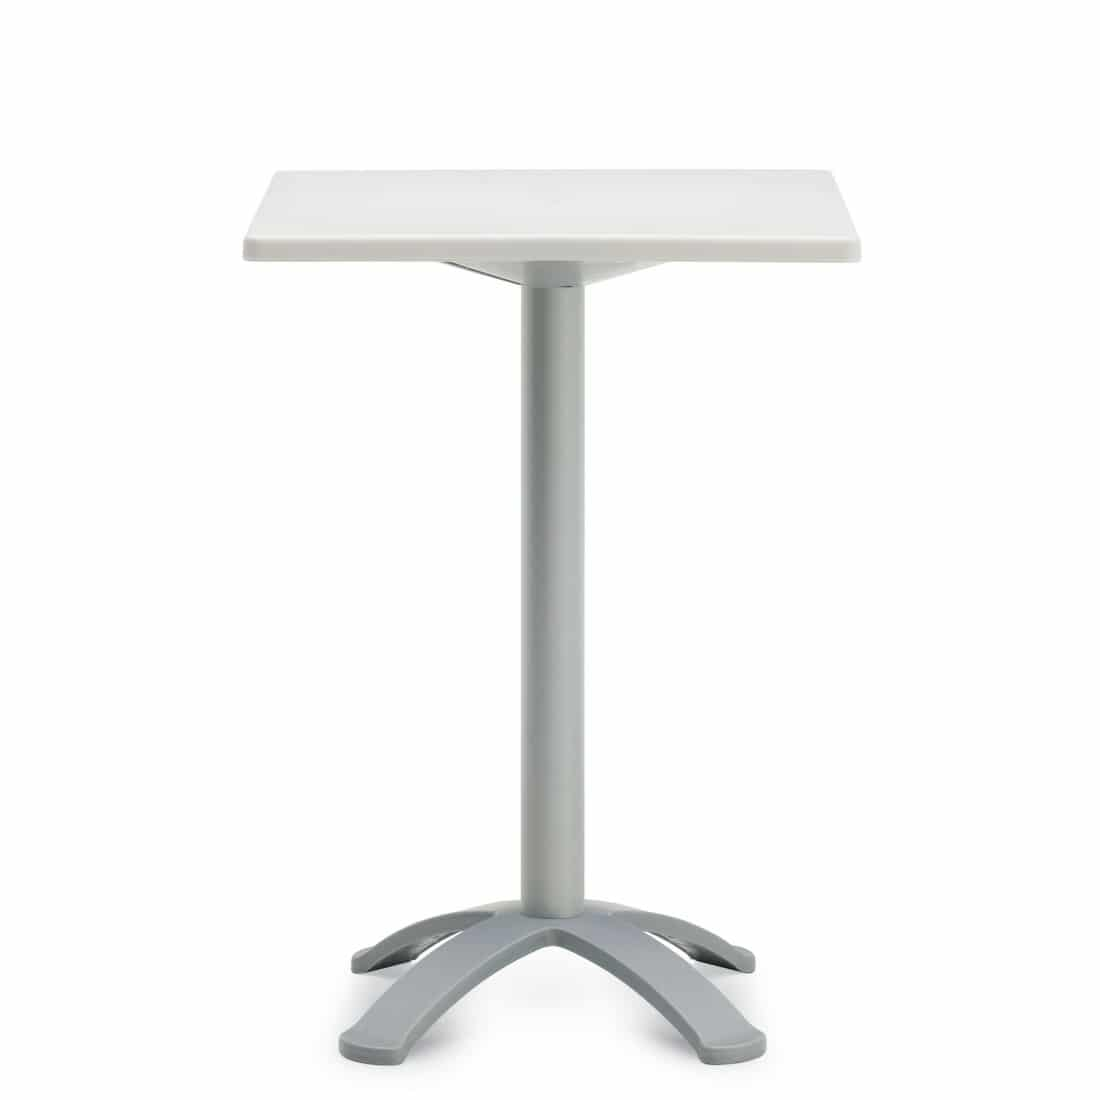 White Square Table With Grey Post, Bar Height (6786)